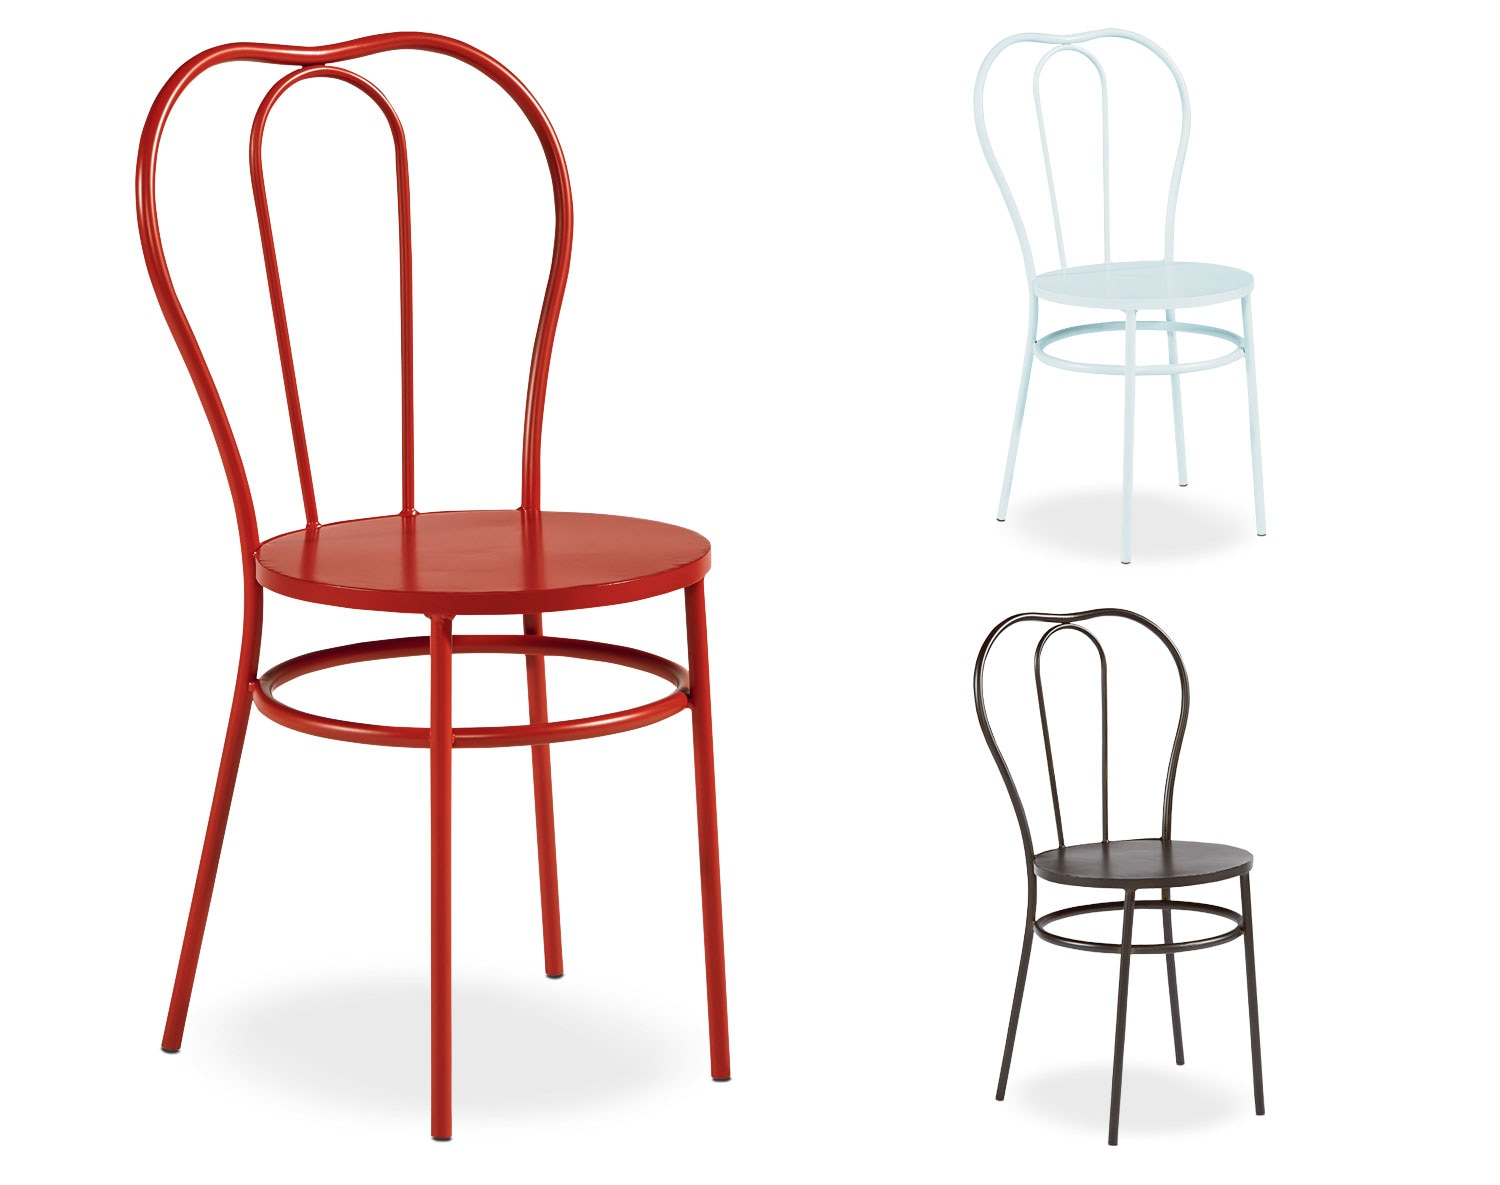 The Bistro Chair Collection